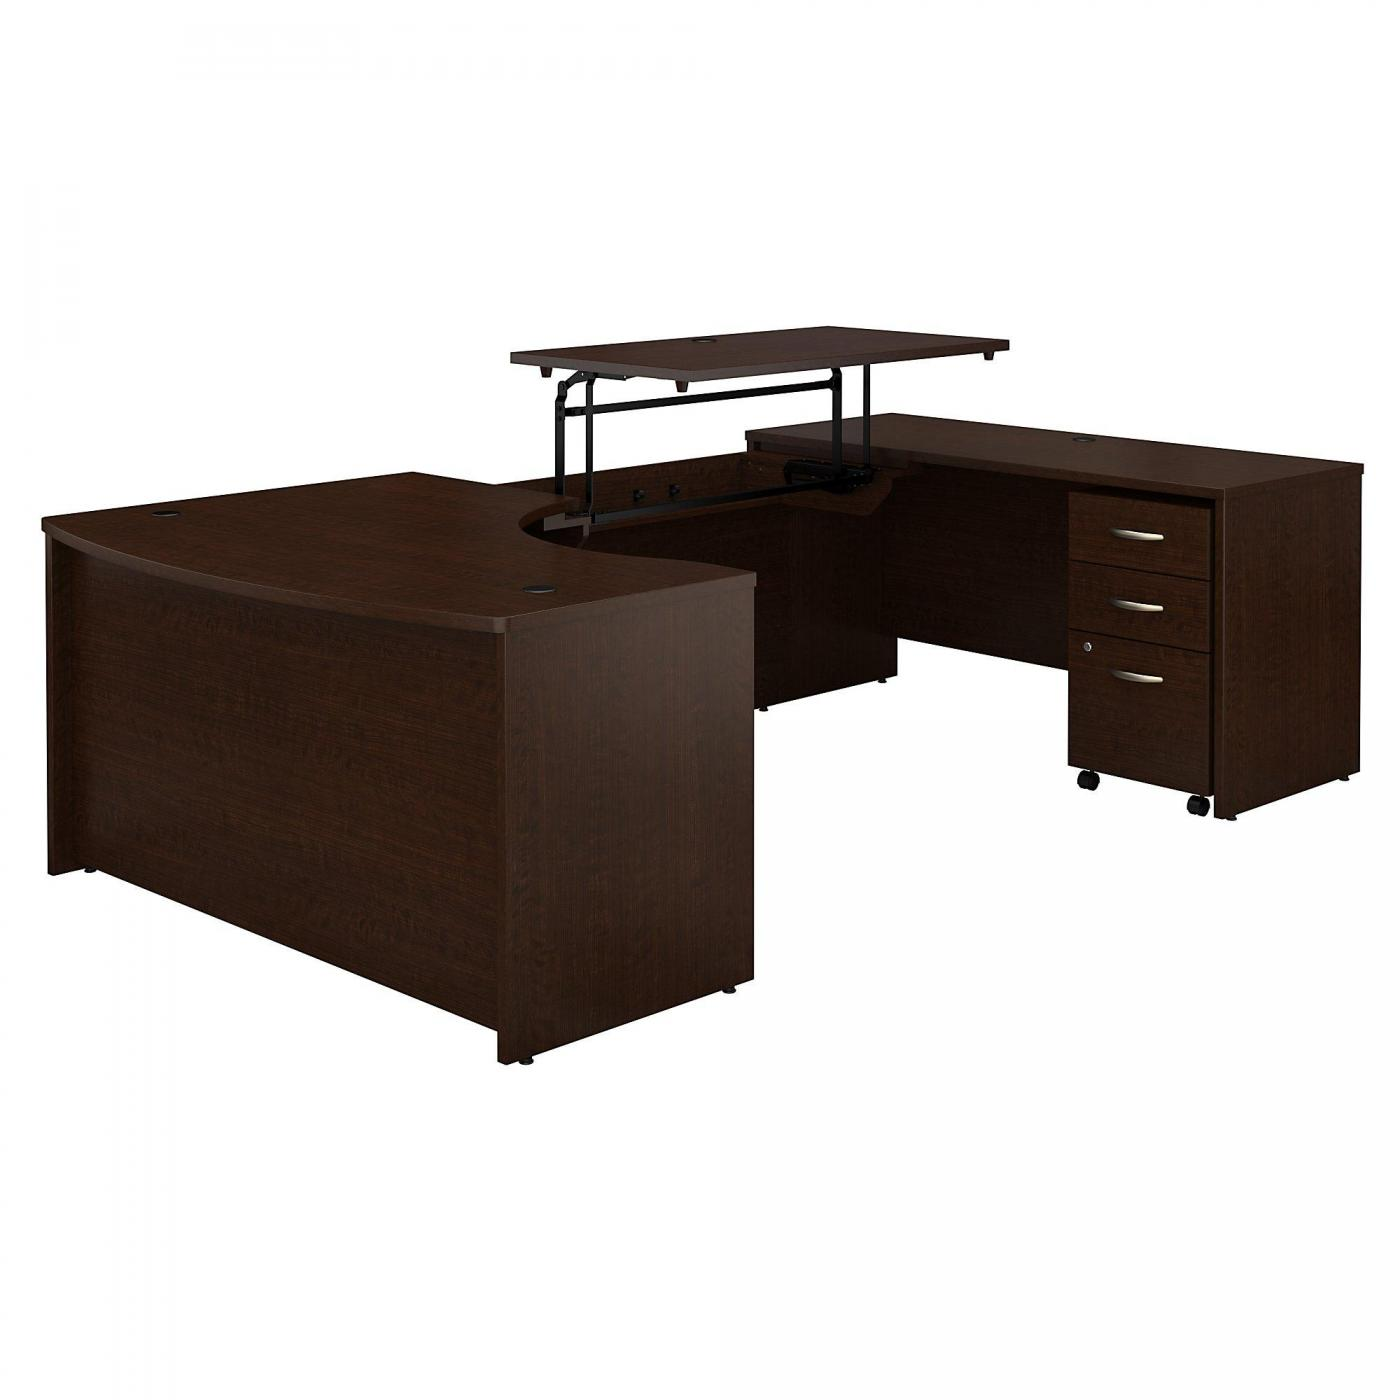 <font color=#c60><b>BUSH BUSINESS FURNITURE SERIES C 60W X 43D LEFT HAND 3 POSITION SIT TO STAND U SHAPED DESK WITH MOBILE FILE CABINET. FREE SHIPPING</font></b>